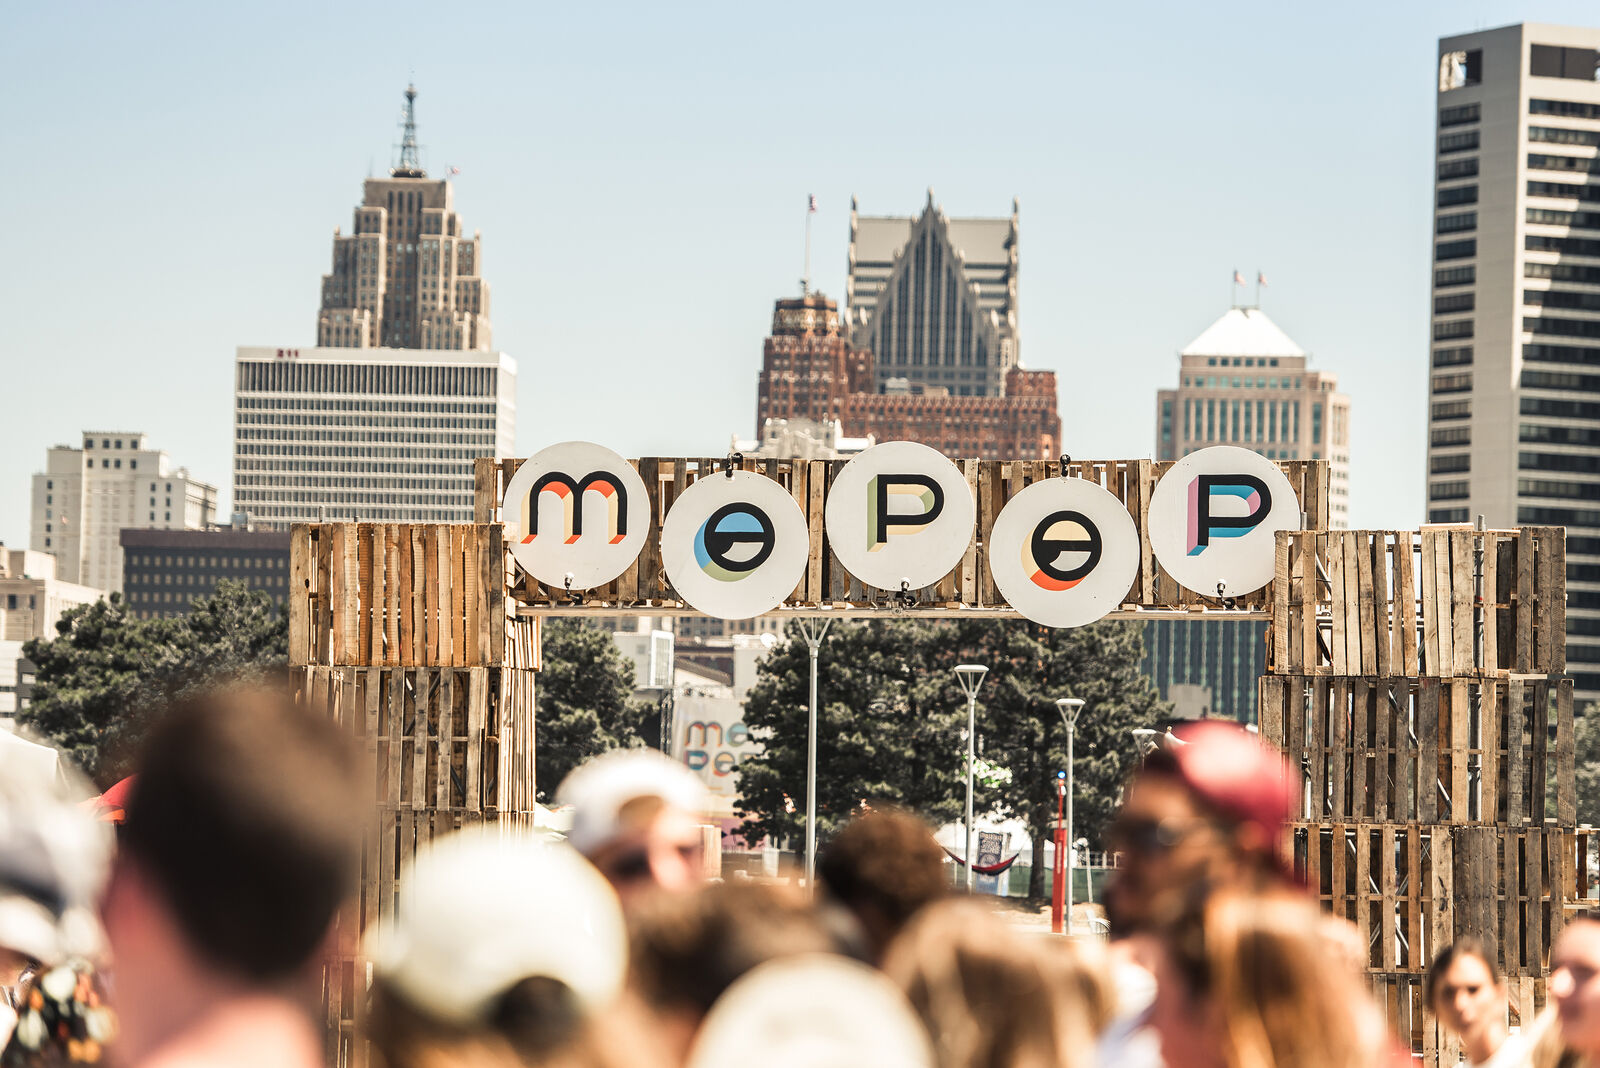 Mo Pop Festival Saturday Only featuring Bon Iver, Vince Staples, Highly Suspect and more Tickets (Jul 28)